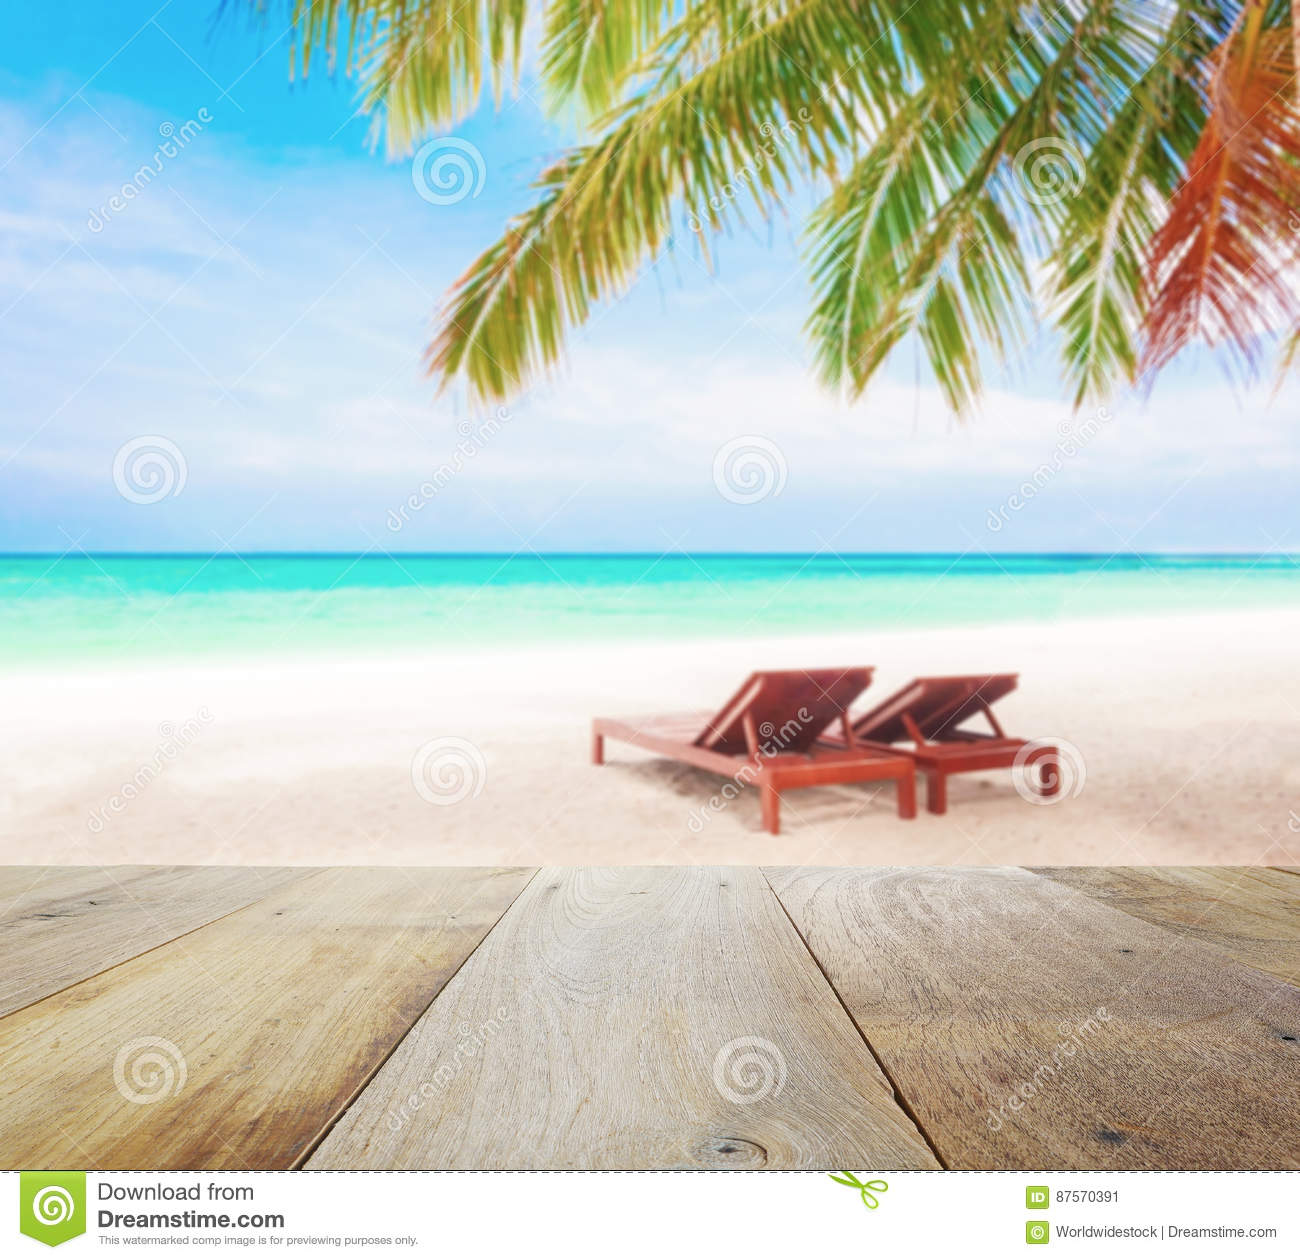 Wood table top on blur beach background with beach chairs. Under coconut tree Stock Image  sc 1 st  Dreamstime.com & Beach Chairs Stock Photos - Download 29005 Images